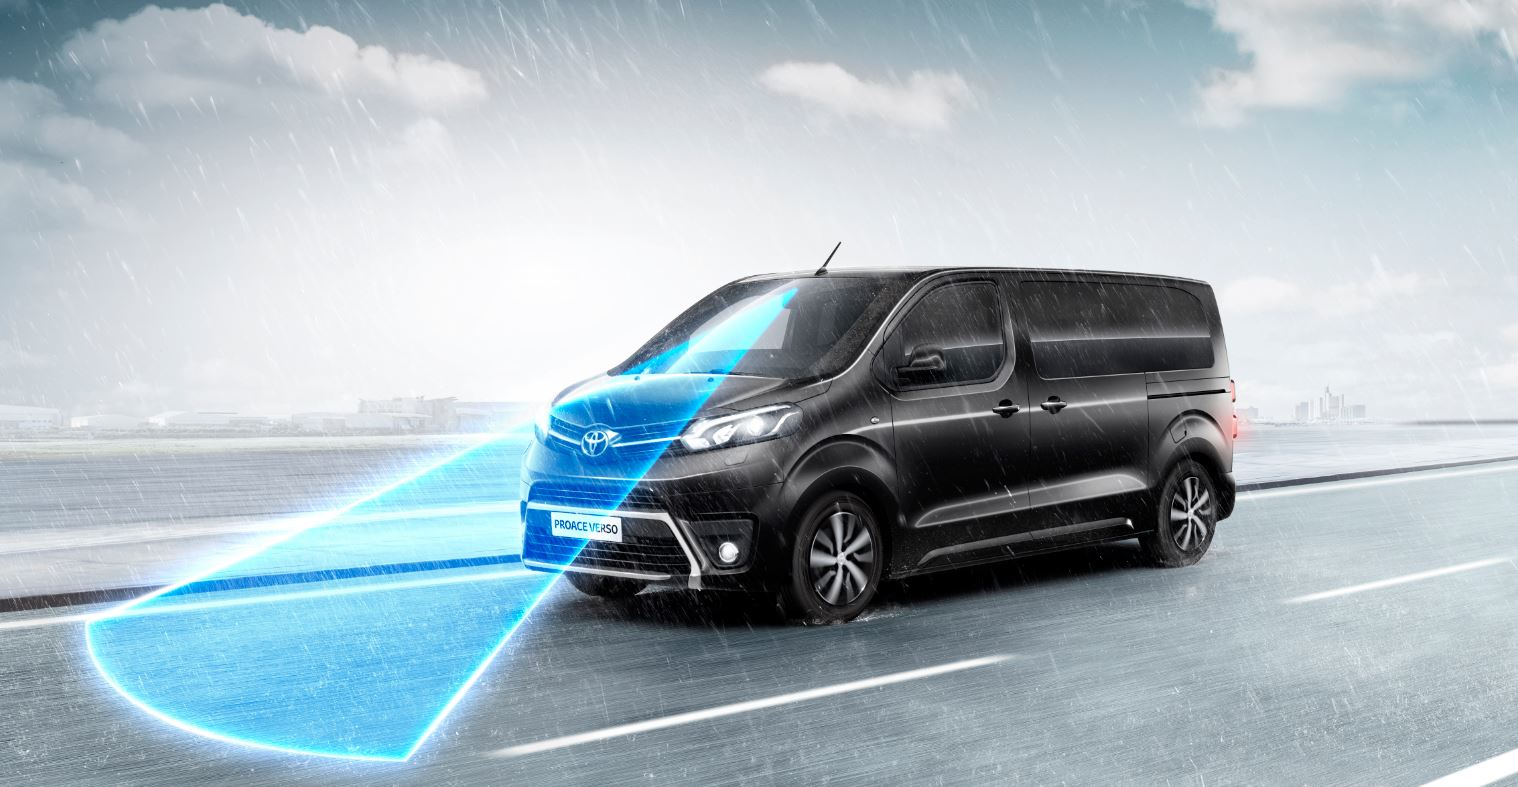 All New PROACE models & features